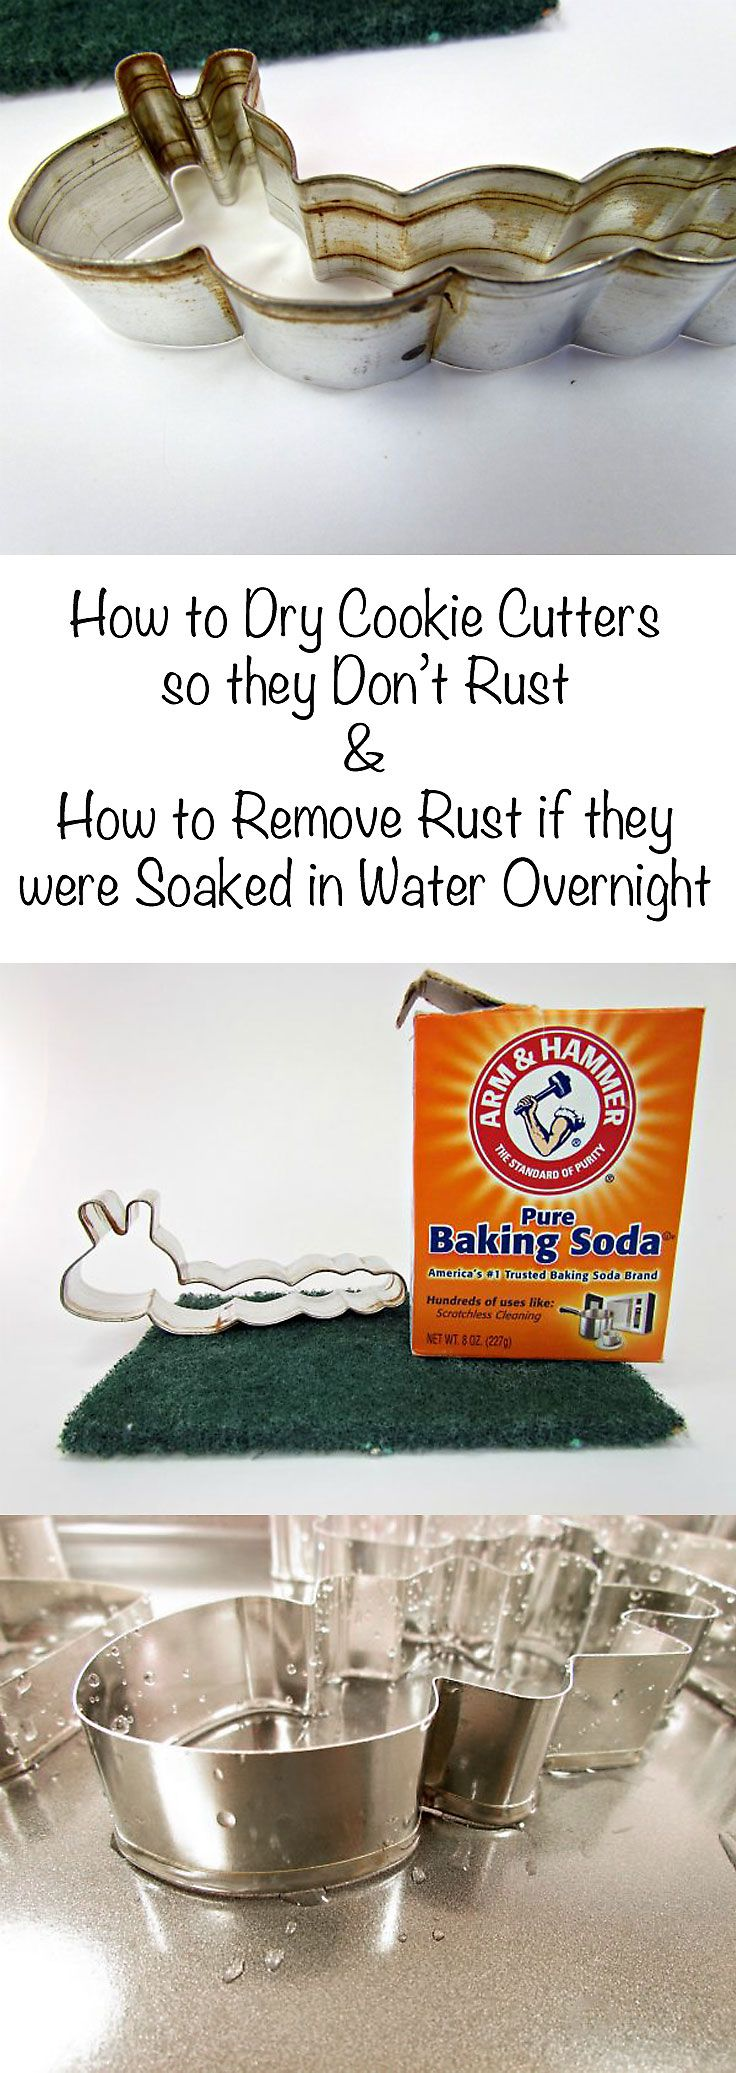 How to Dry Cookie Cutters and How to Remove Rust if they were Soaked in Water Overnight by www.thebearfootbaker.com More